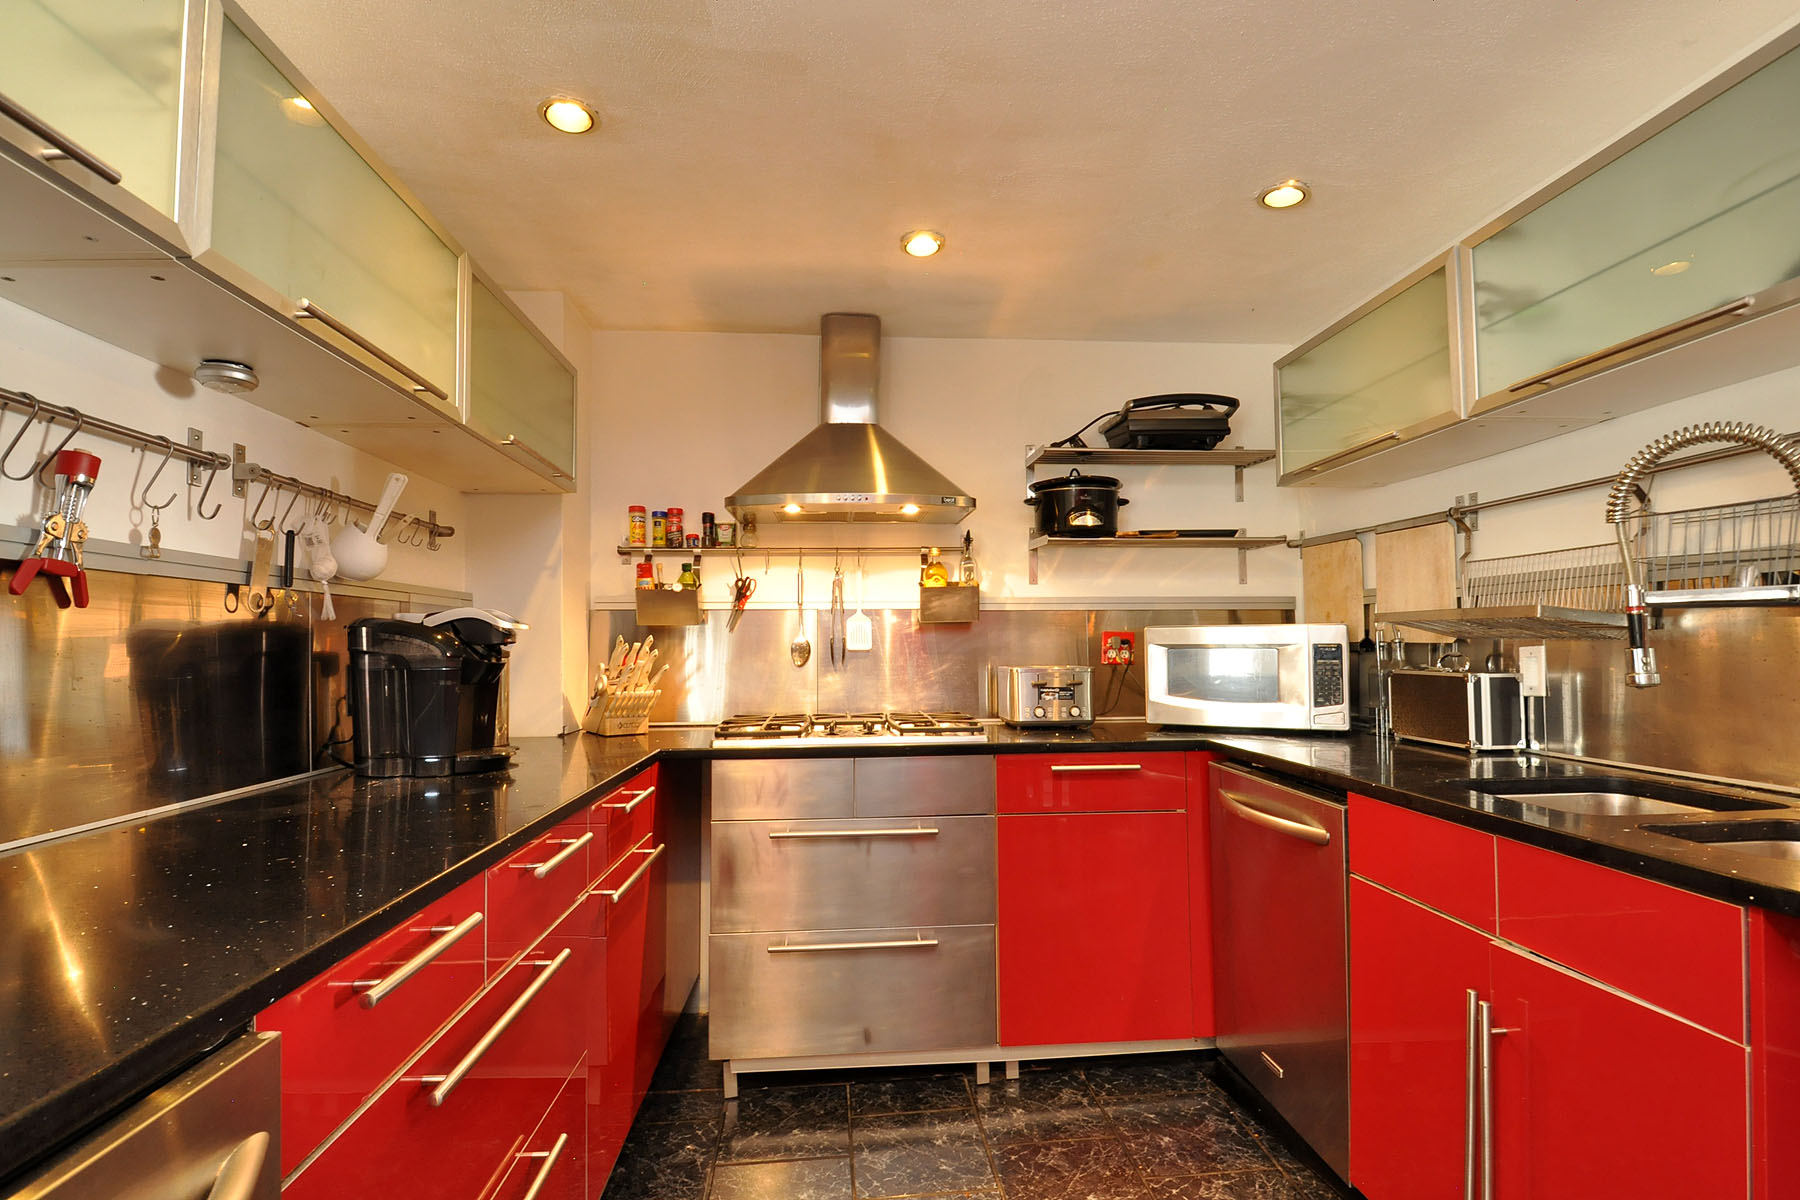 Single Family Home for Sale at Location And Parking 711 East 7th Street South Boston, Boston, Massachusetts 02127 United States